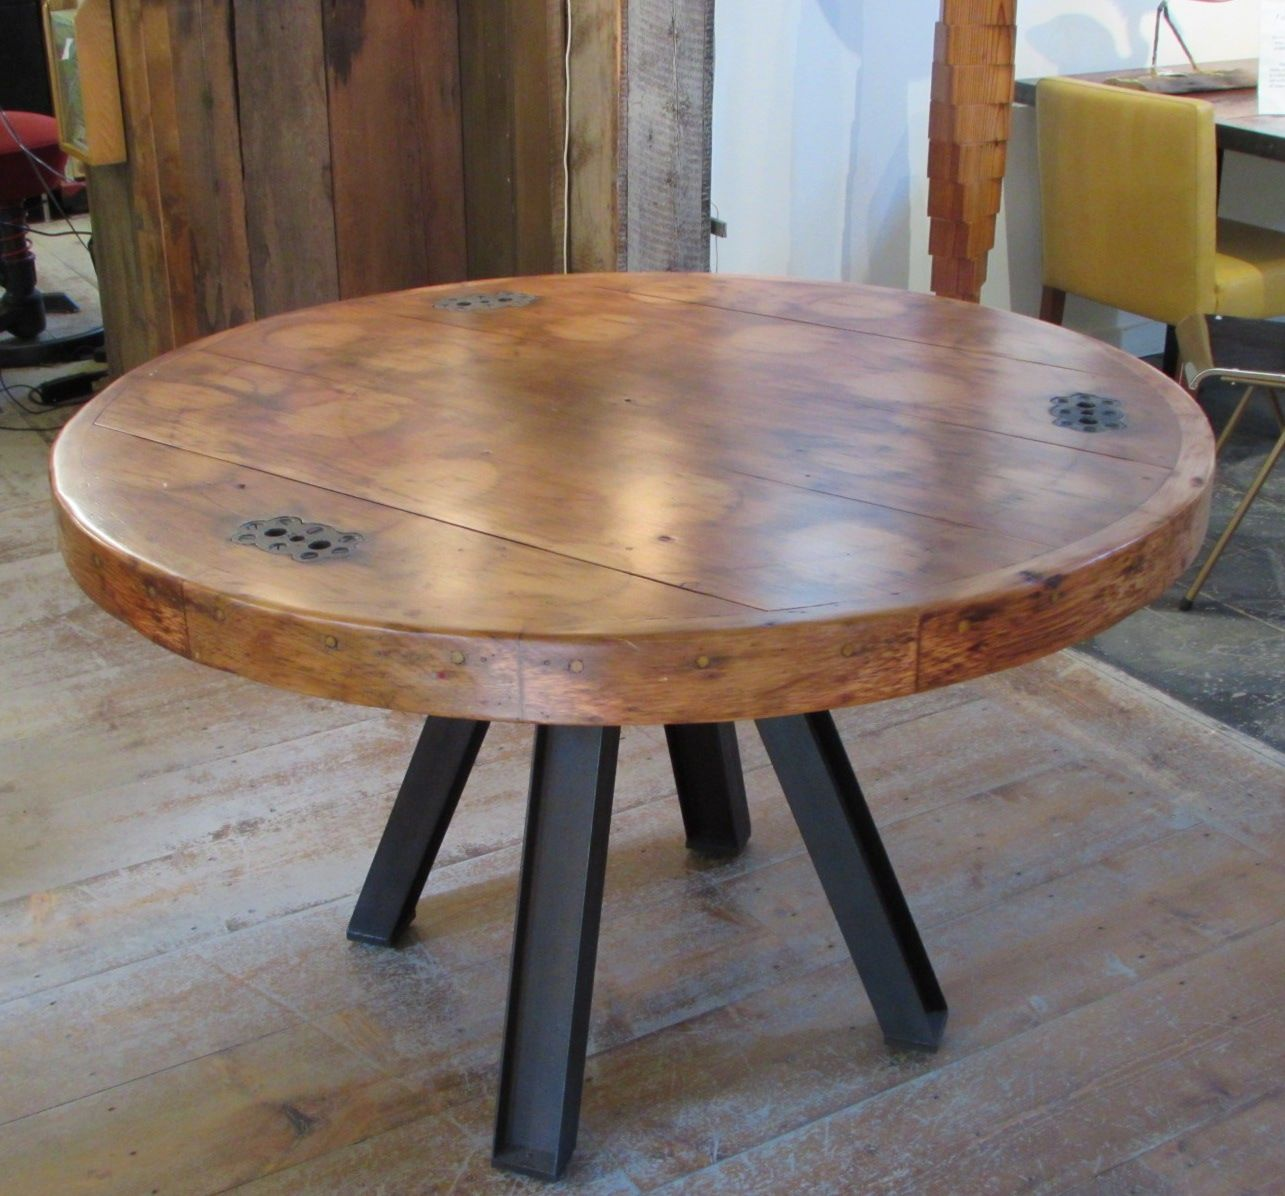 Delicieux Dining Table Made From Reclaimed Wood Industrial Pattern With Reclaimed  I Beams As Legs